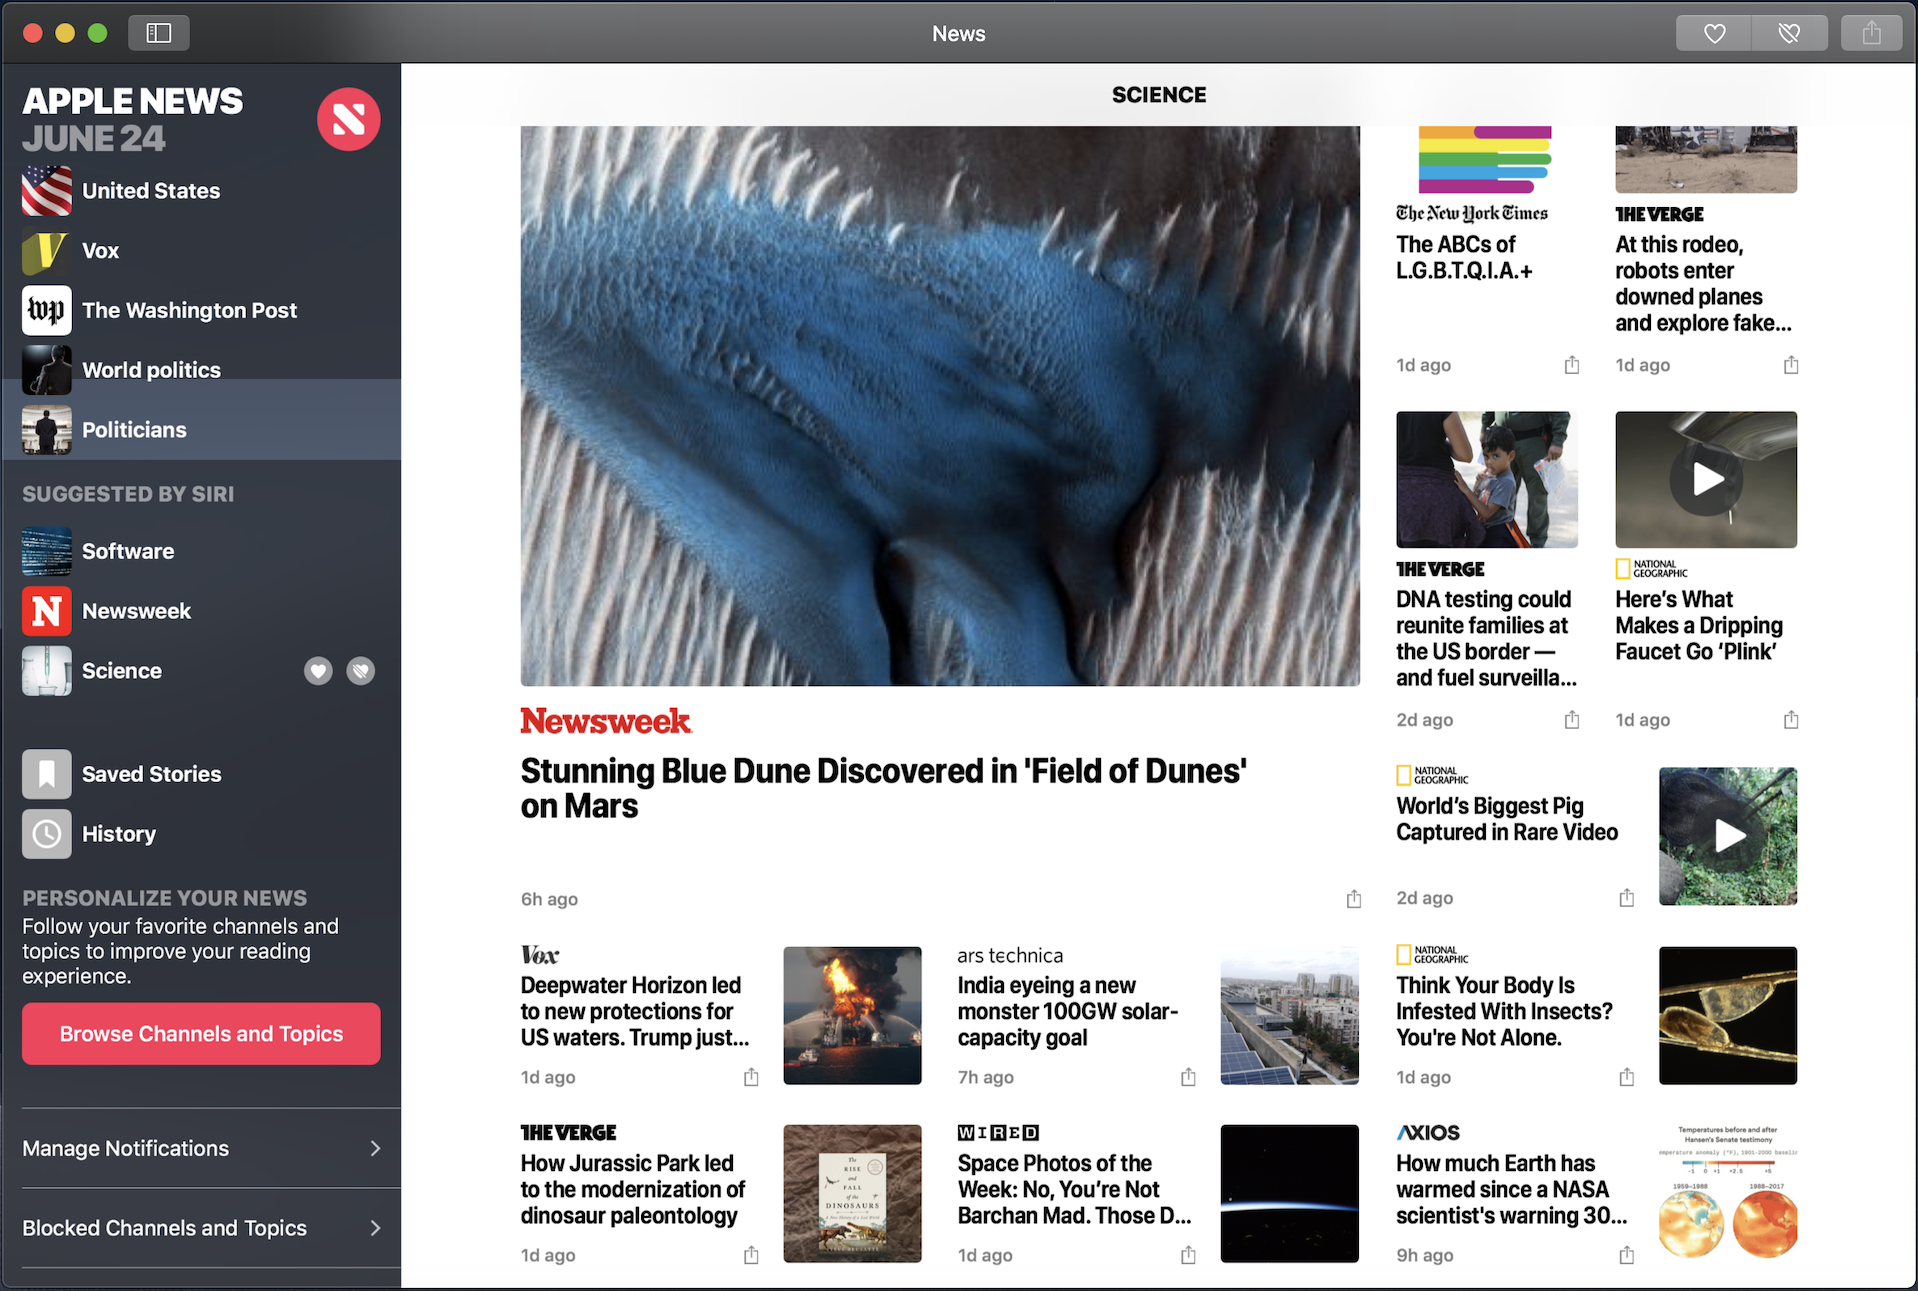 Mojave's News app is built using UIKit, but looks and works like other Mac titles. You can dismiss the sidebar to focus on a single,uncluttered view of an article.